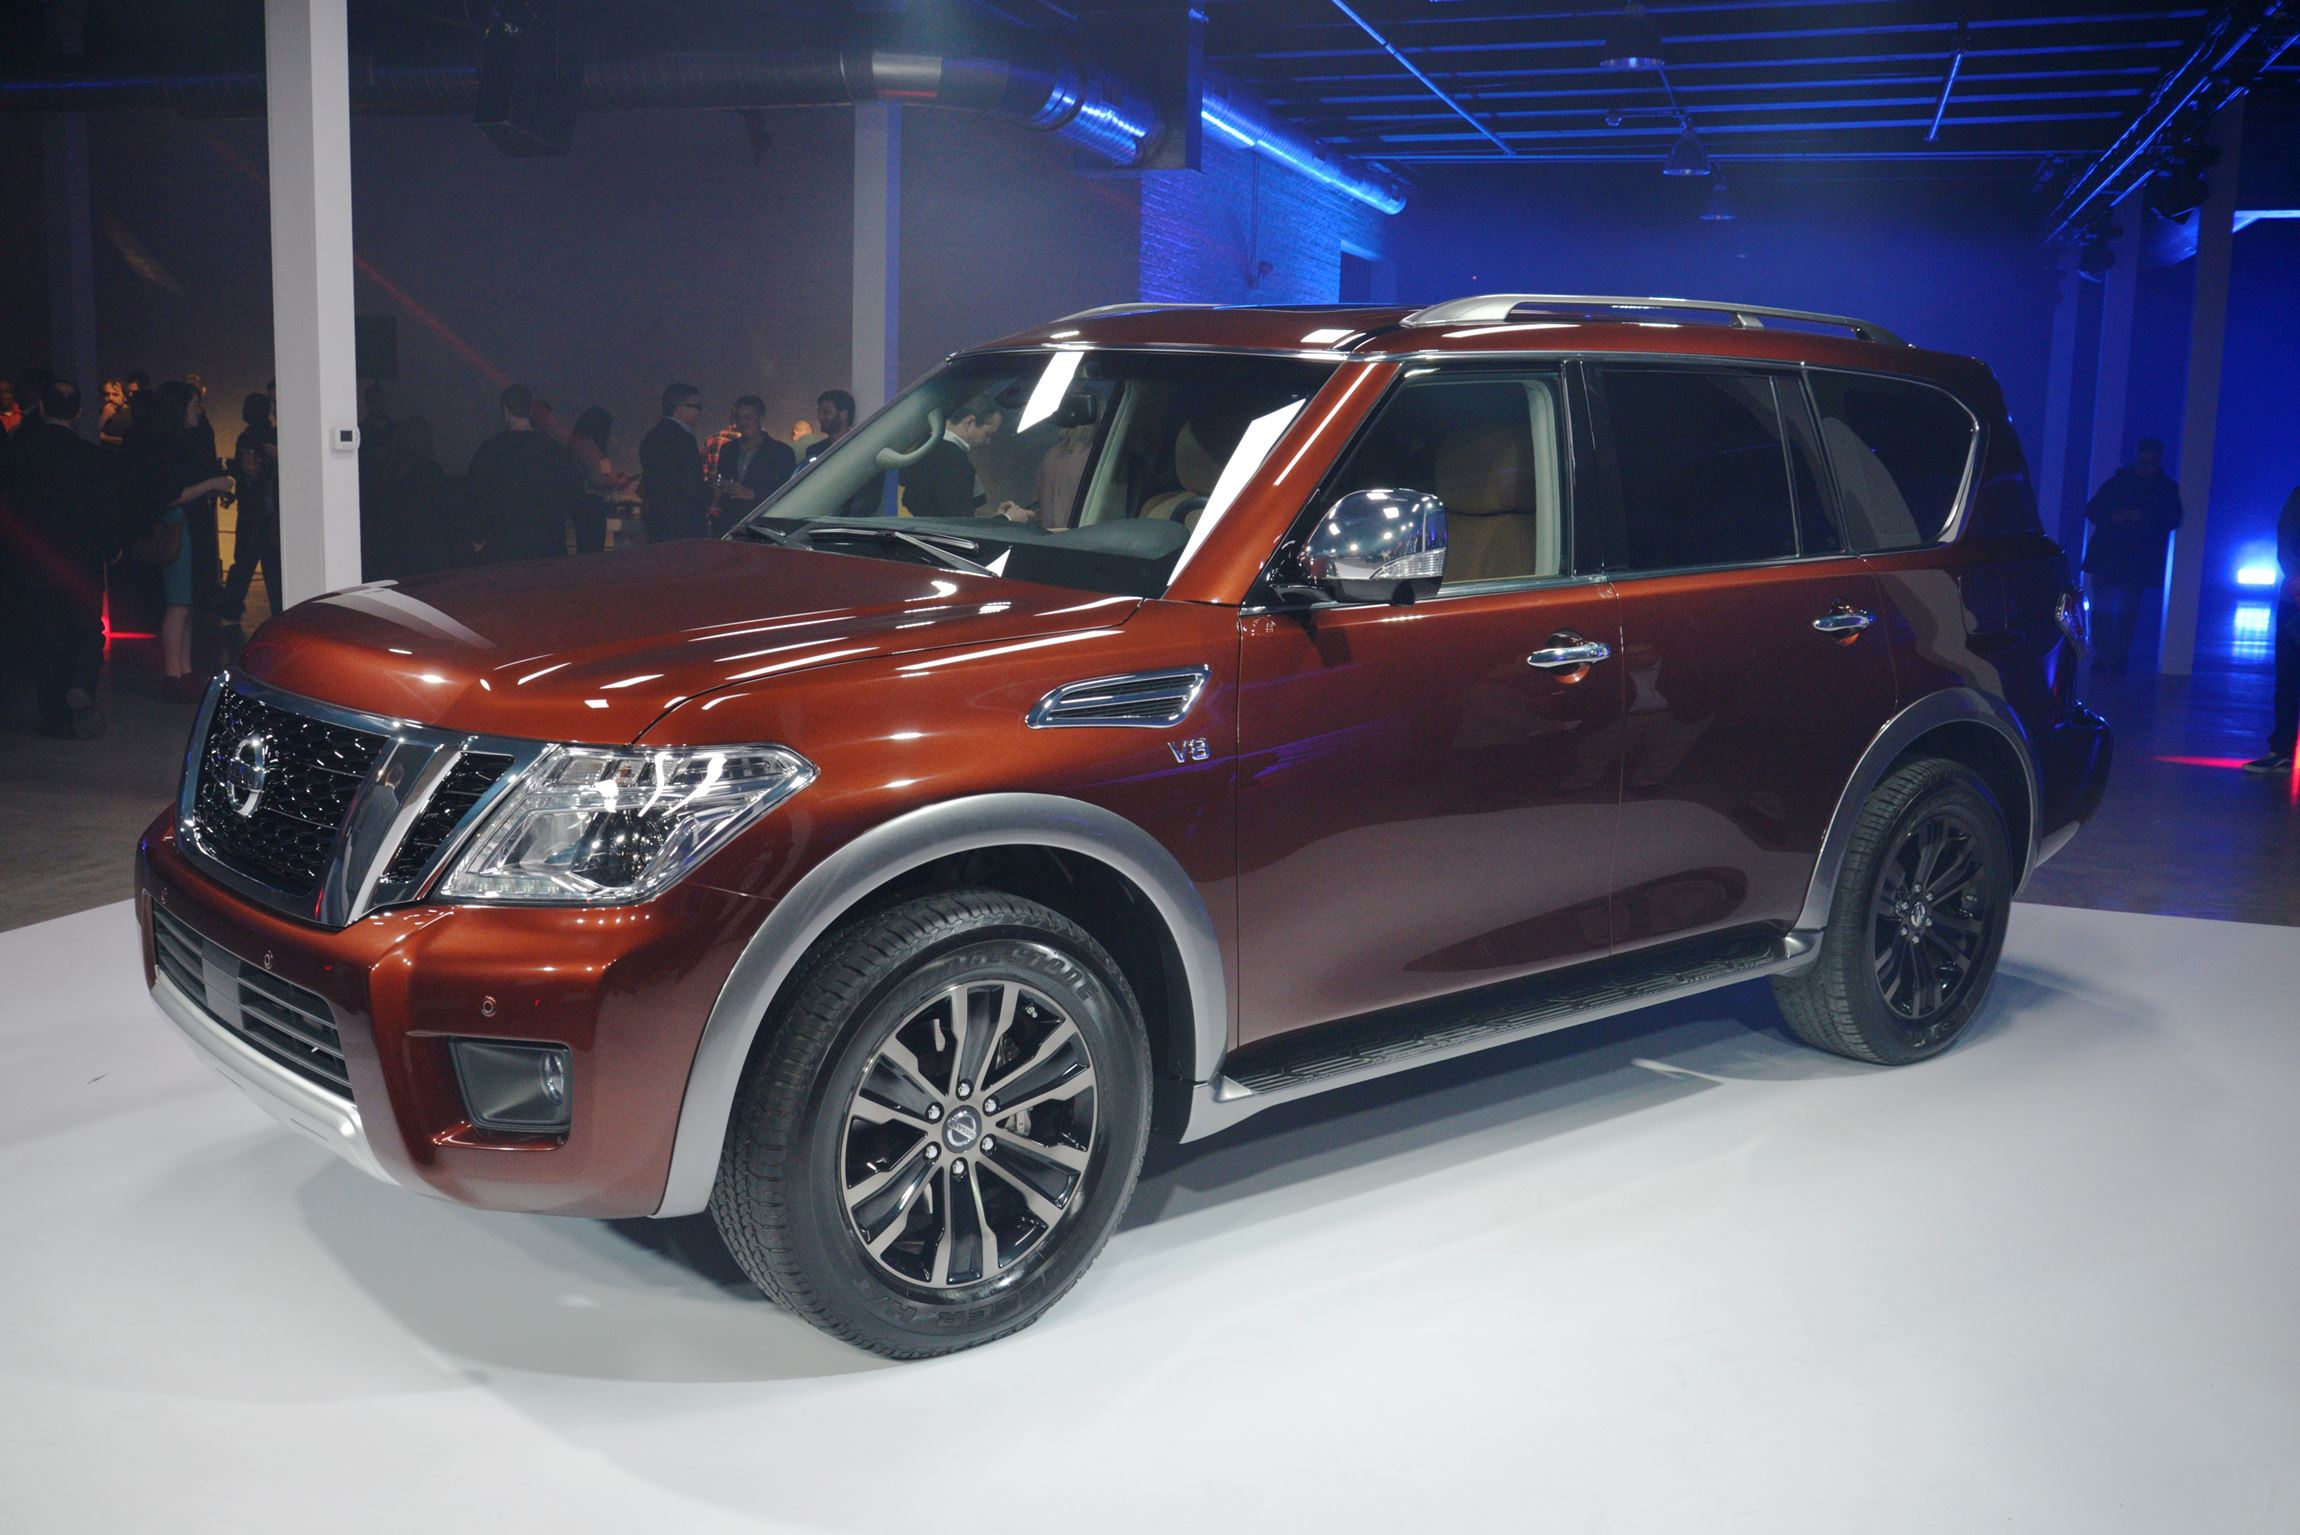 2017 nissan armada swaps from truck basis to bomb proof global patrol models car revs. Black Bedroom Furniture Sets. Home Design Ideas